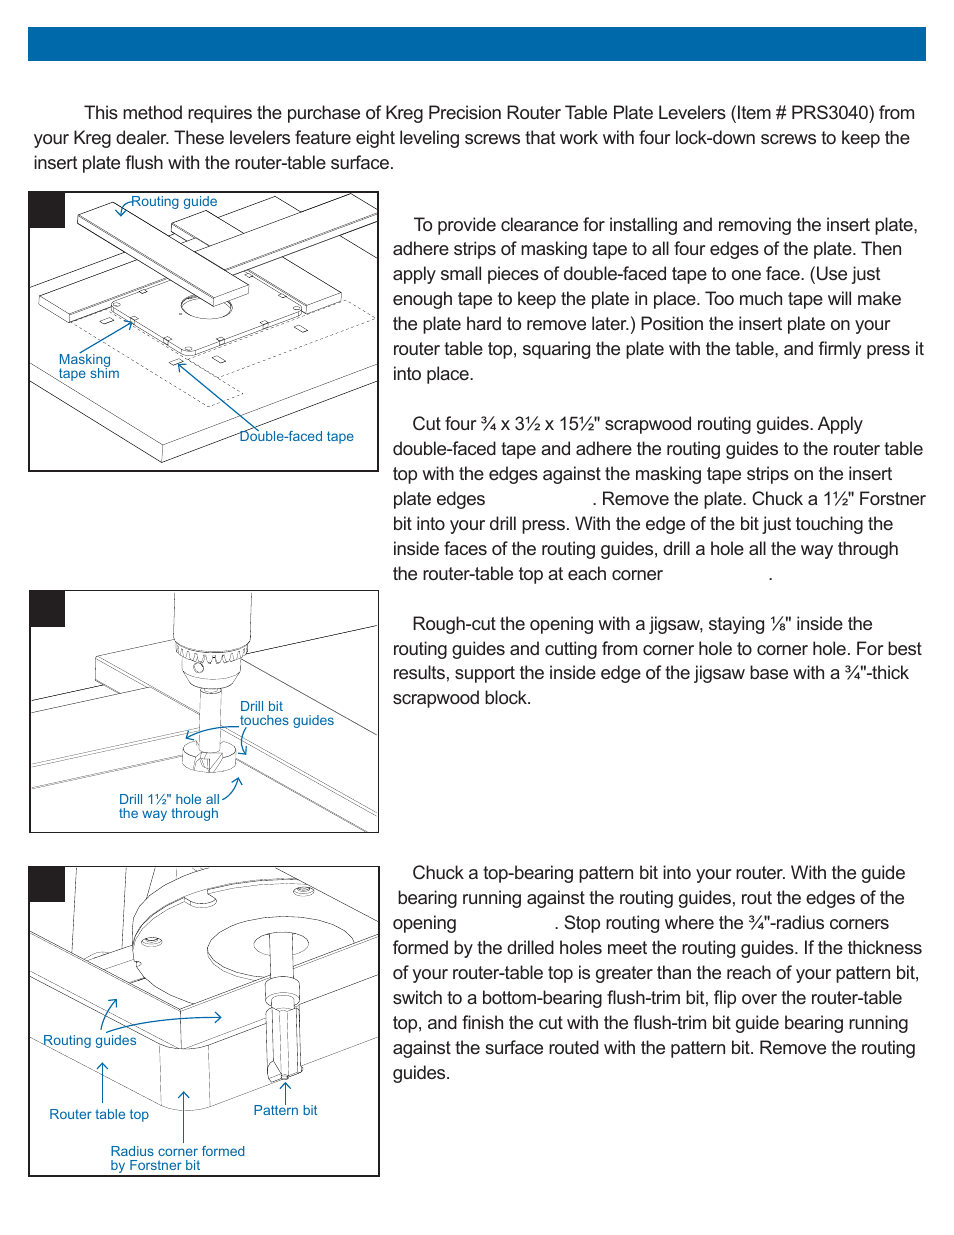 How to install a router table insert plate gallery wiring table how to install router table insert plate image collections wiring installing router table insert plate gallery greentooth Images